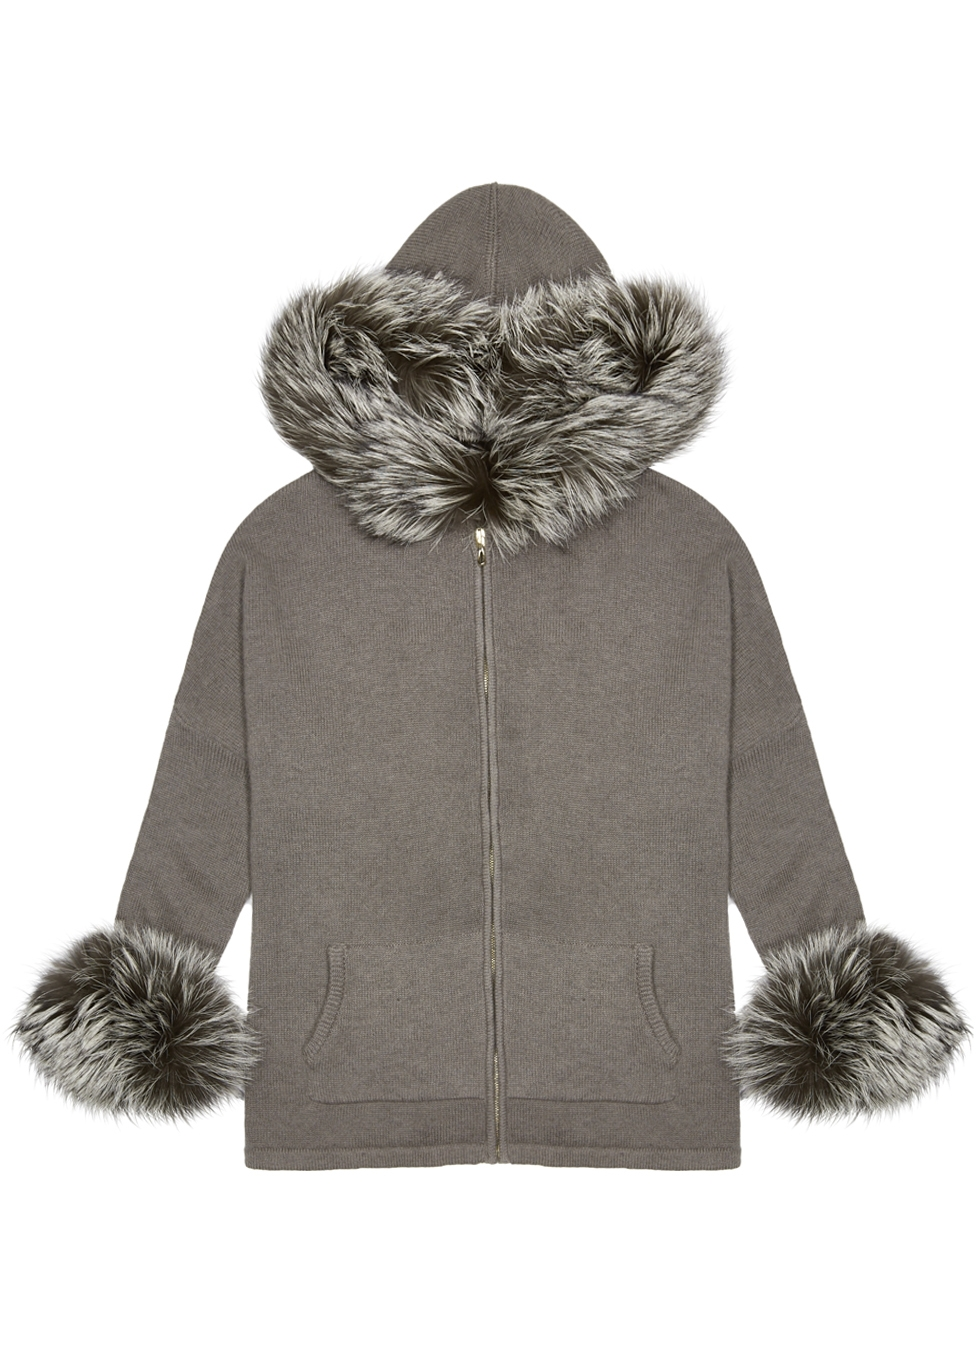 DOM GOOR Charcoal Fur-Trimmed Cashmere Cardigan in Grey